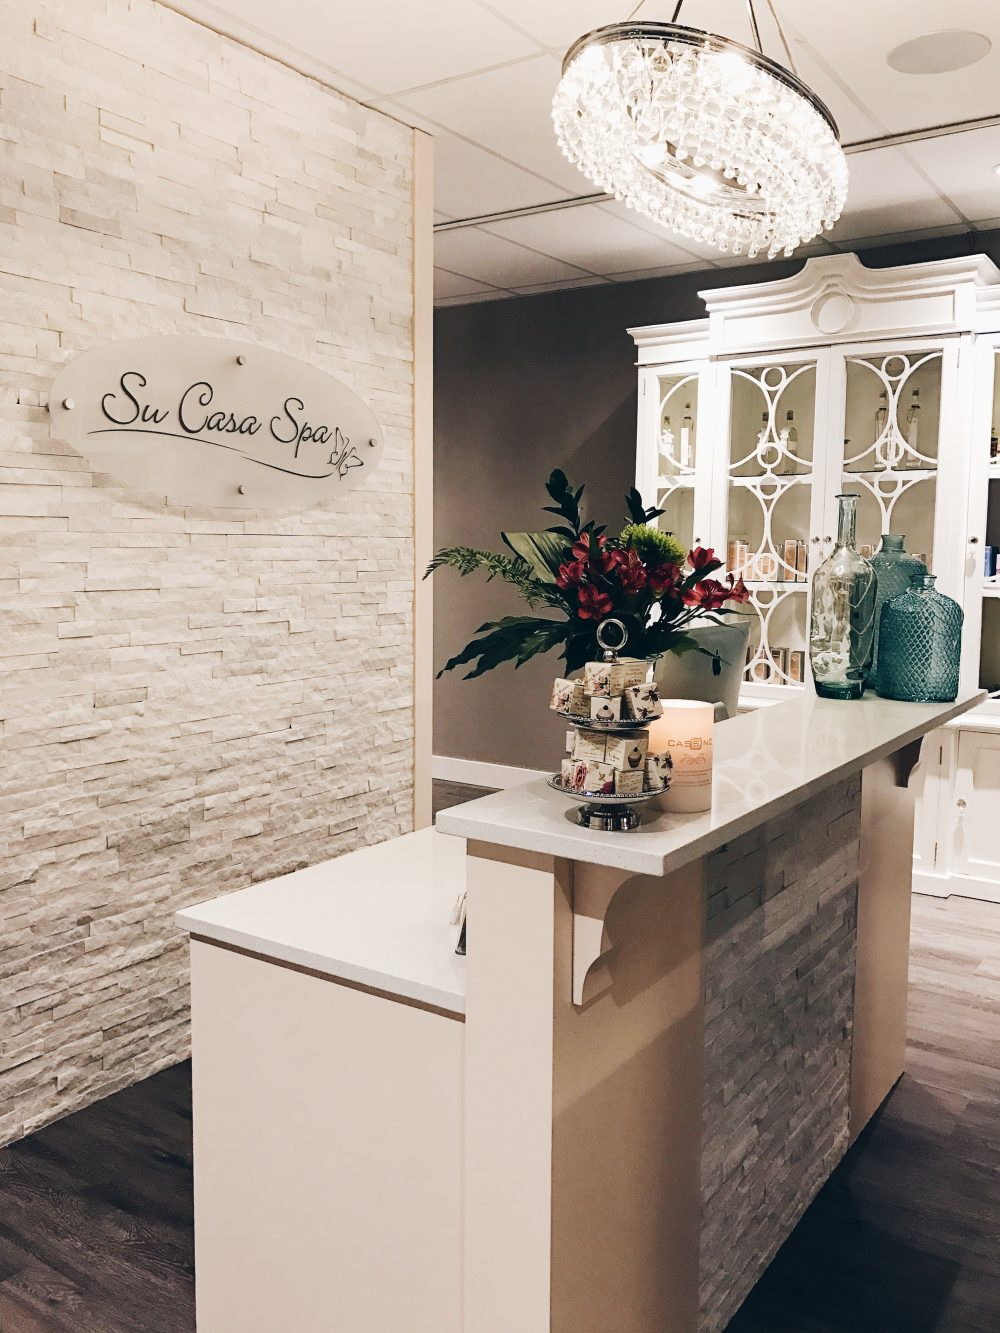 Su Casa Spa and Laser in Fort Langley